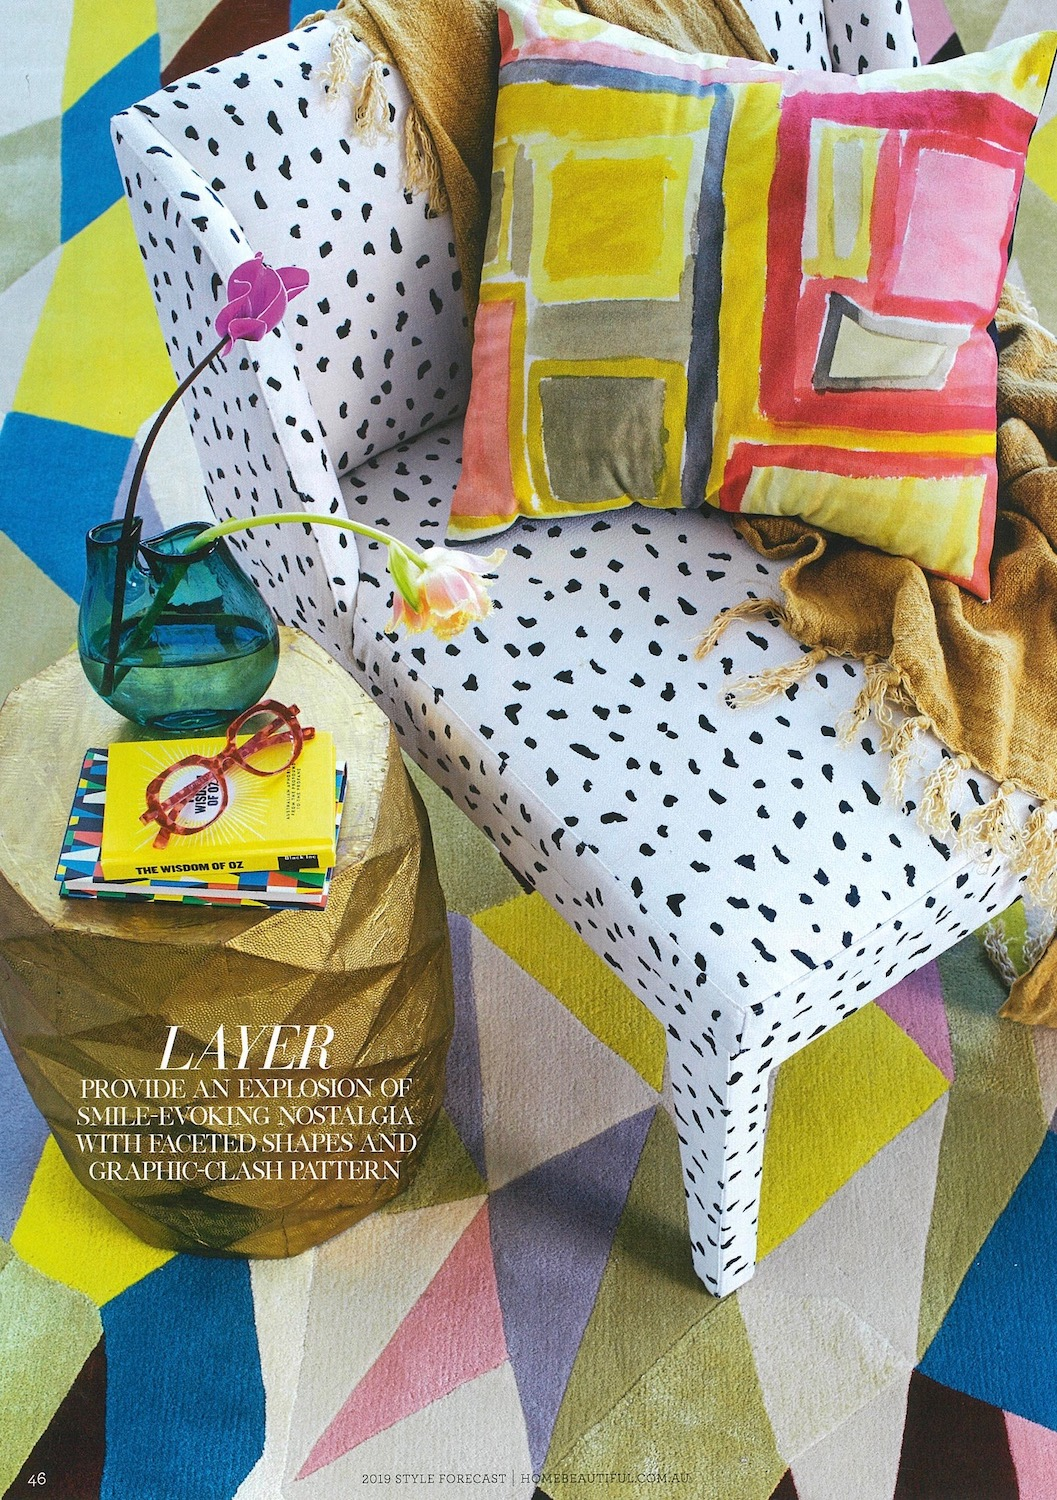 Home Beautiful October 2018 Issue   Damian Showyin 'Windows' cushion featured in the 2019 Style Forecast.